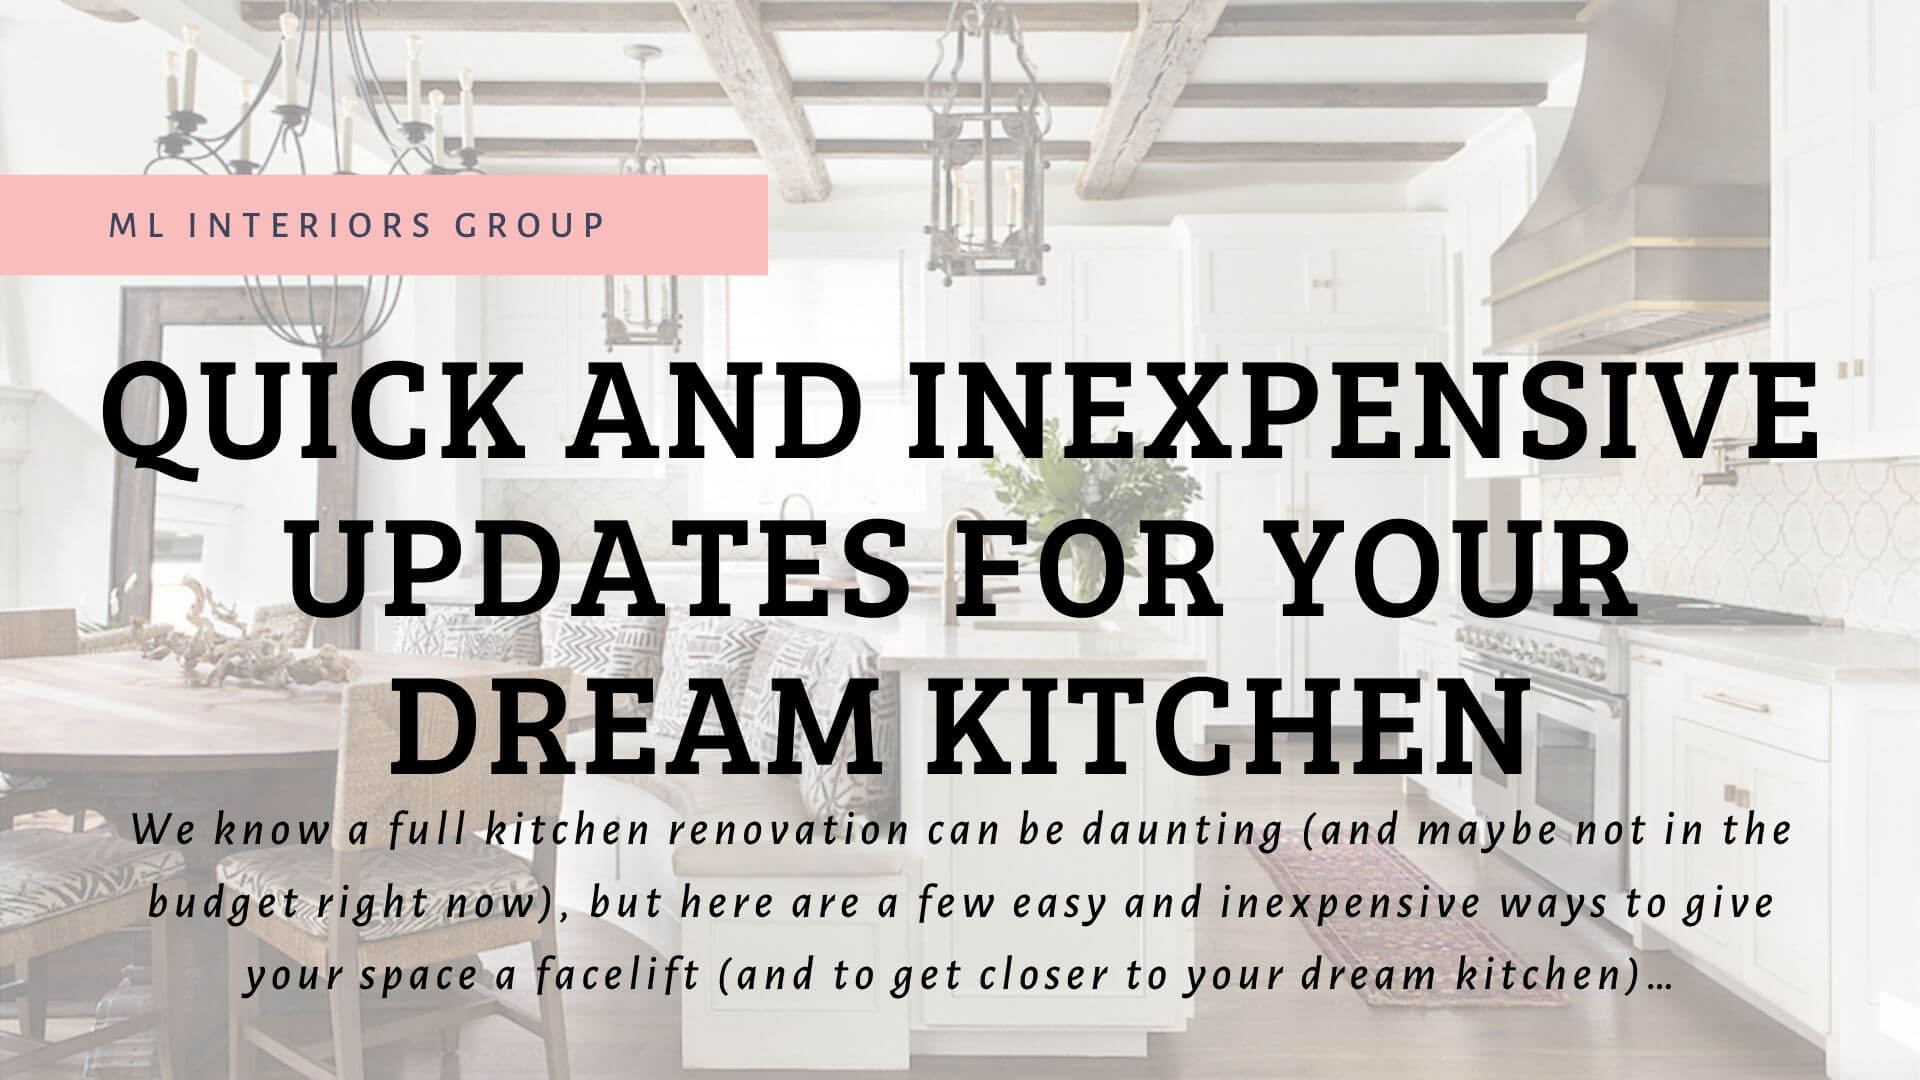 Quick and Inexpensive Updates for Your Dream Kitchen